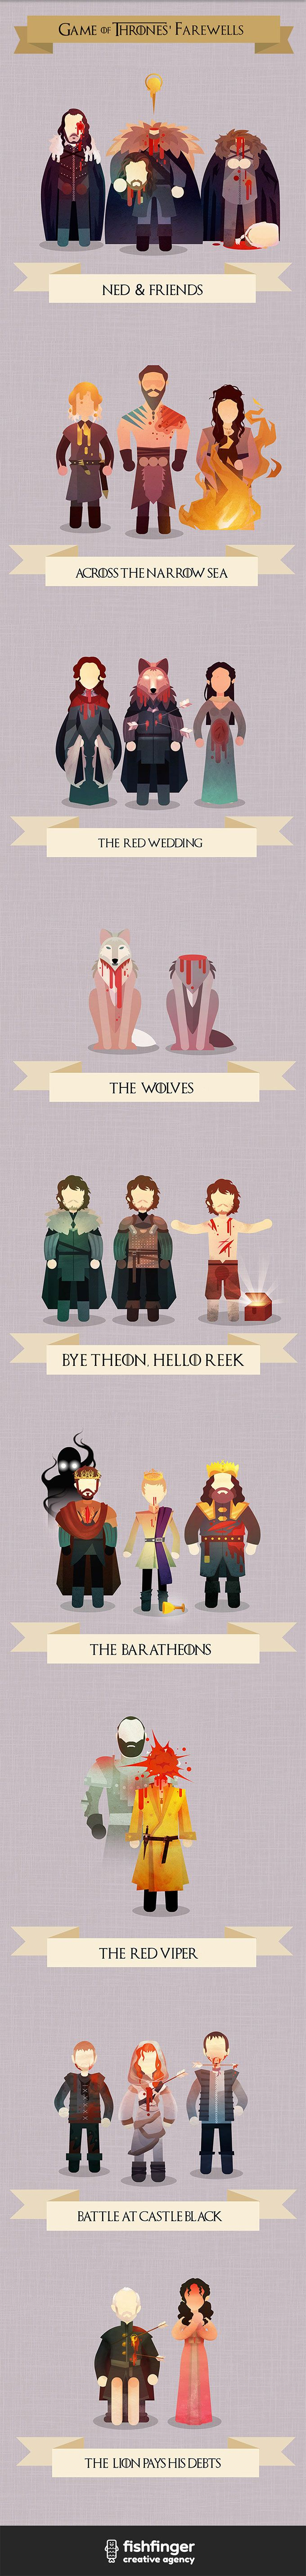 Game of Thrones Deaths Illustrated | Pic | Gear (Except Joffrey isn't a Baratheon...)